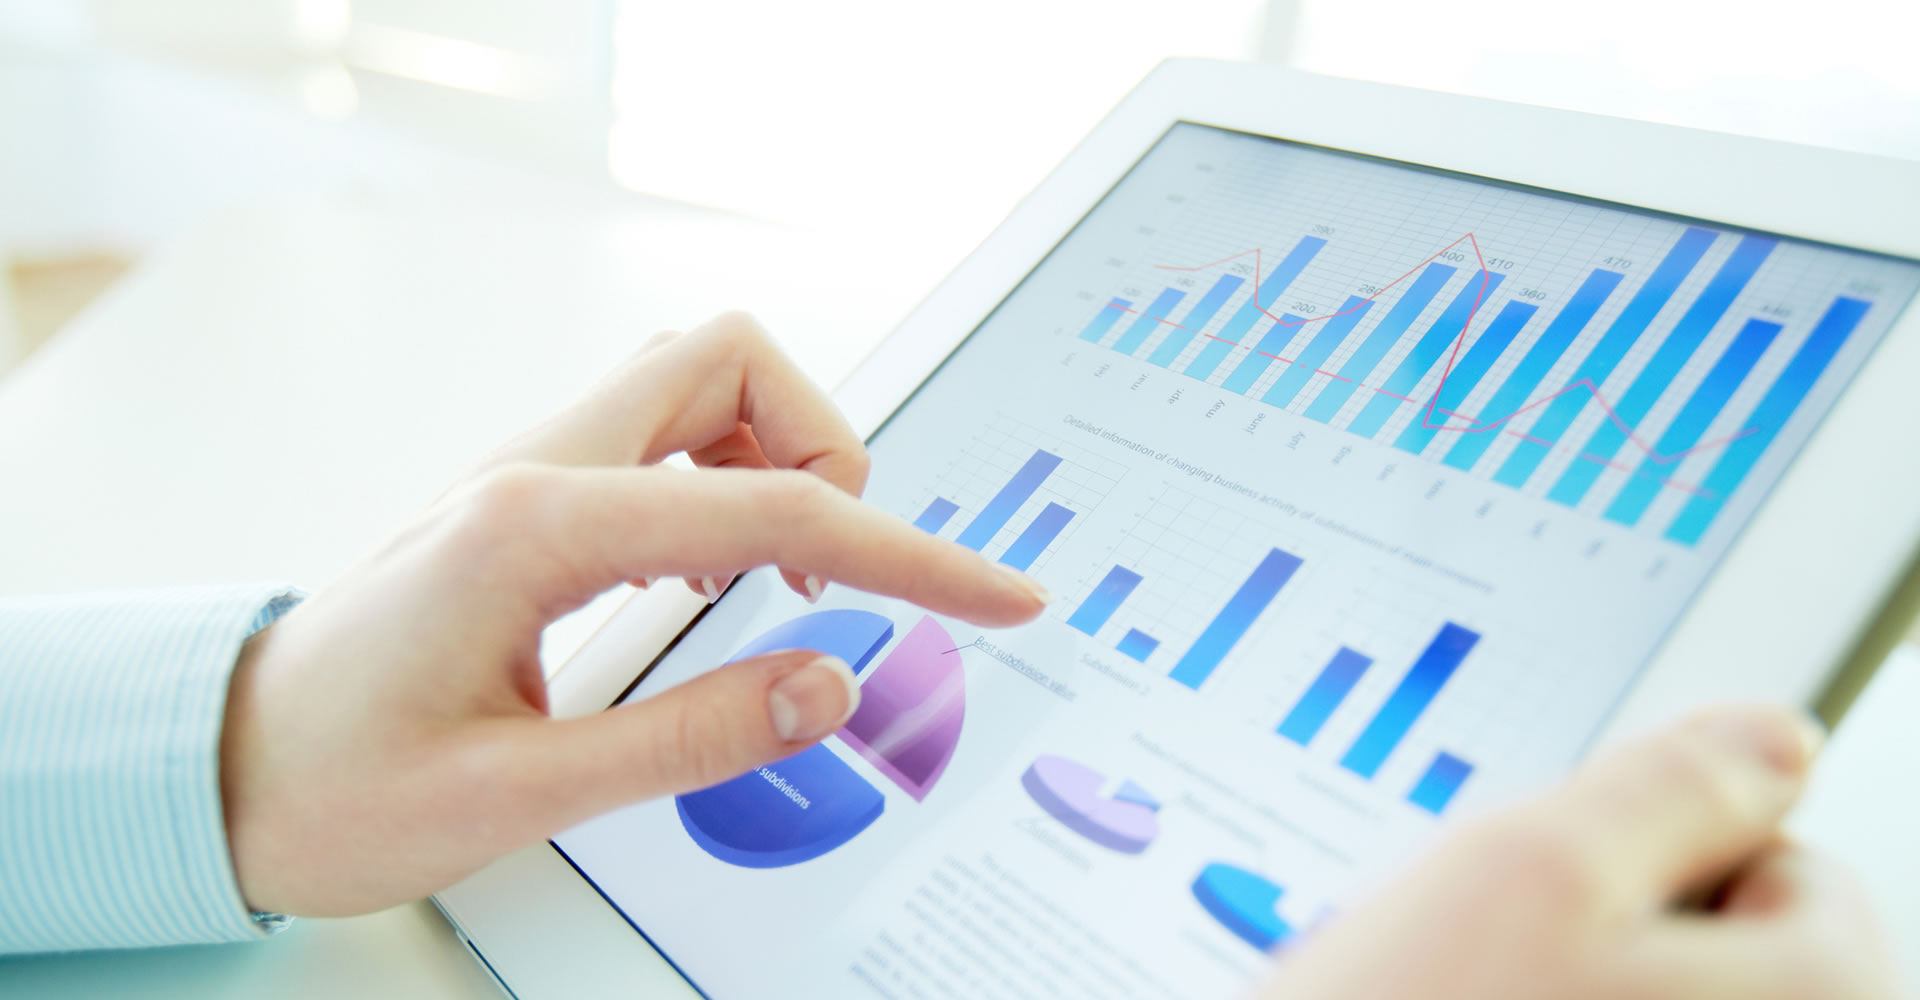 Business Intelligence growth and value: 7 telling stats.